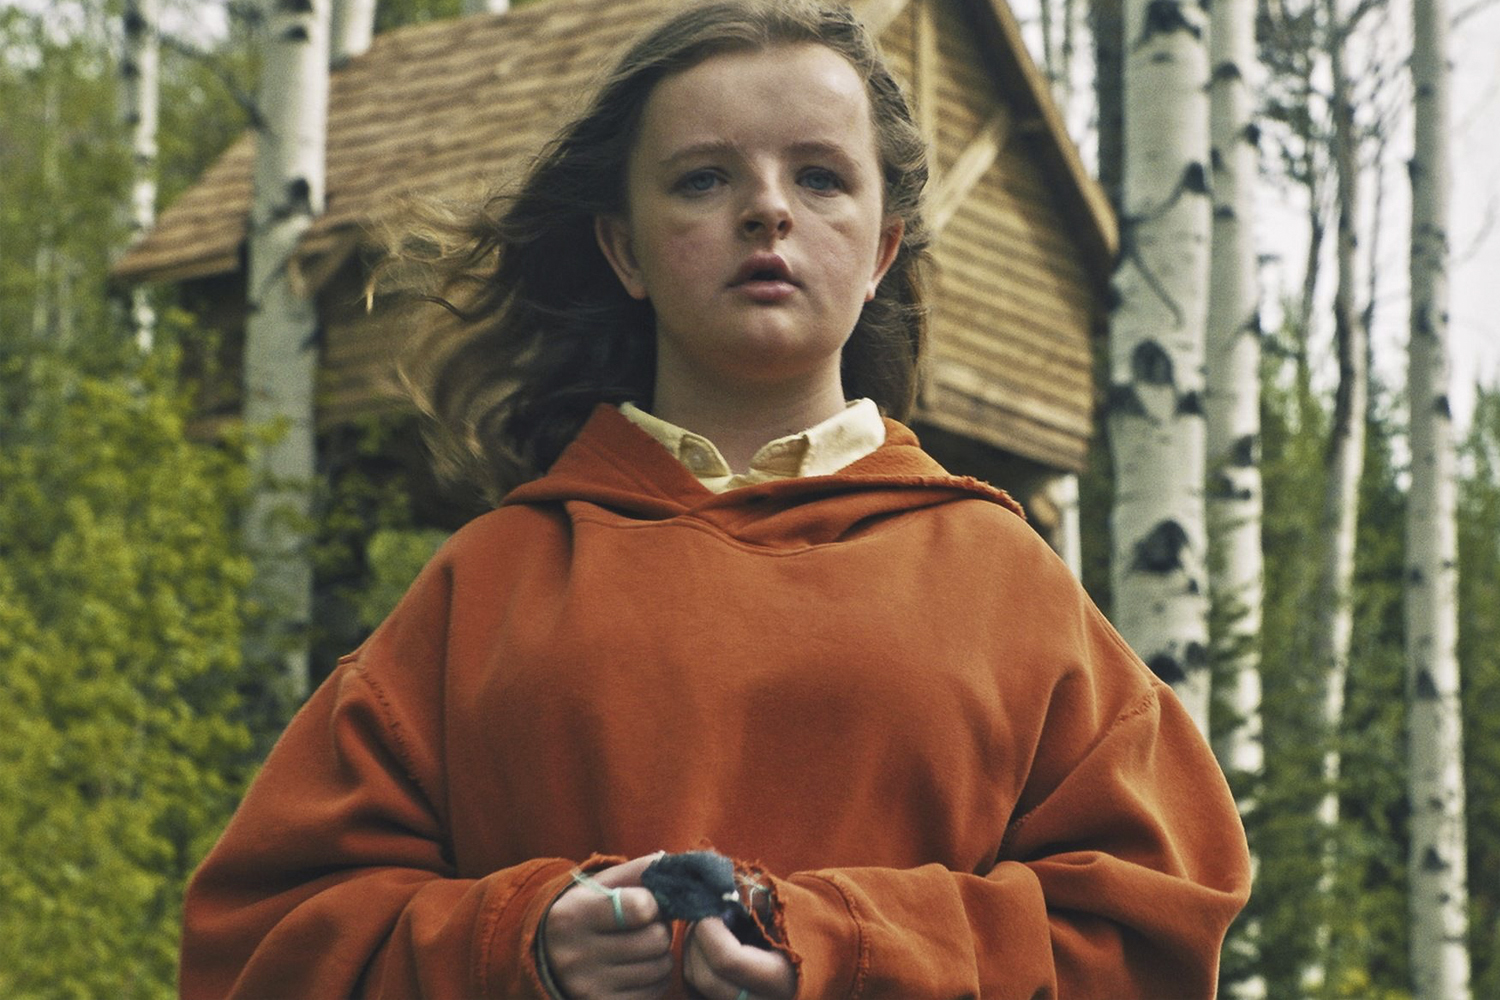 Hereditary - Jump scares and ghastly apparitions are bush league compared to the deep-rooted, traumatizing, and truly disturbing horror of Hereditary, the first feature-length film from director Ari Aster. The film follows the implosion of the Graham household after the death of the family matriarch. Toni Collette puts forth a career best as Annie Graham, twisting her face and unleashing unholy wails as she experiences terror after terror. Dark family secrets come out to play in one of the scariest films of the year. Our review is here.